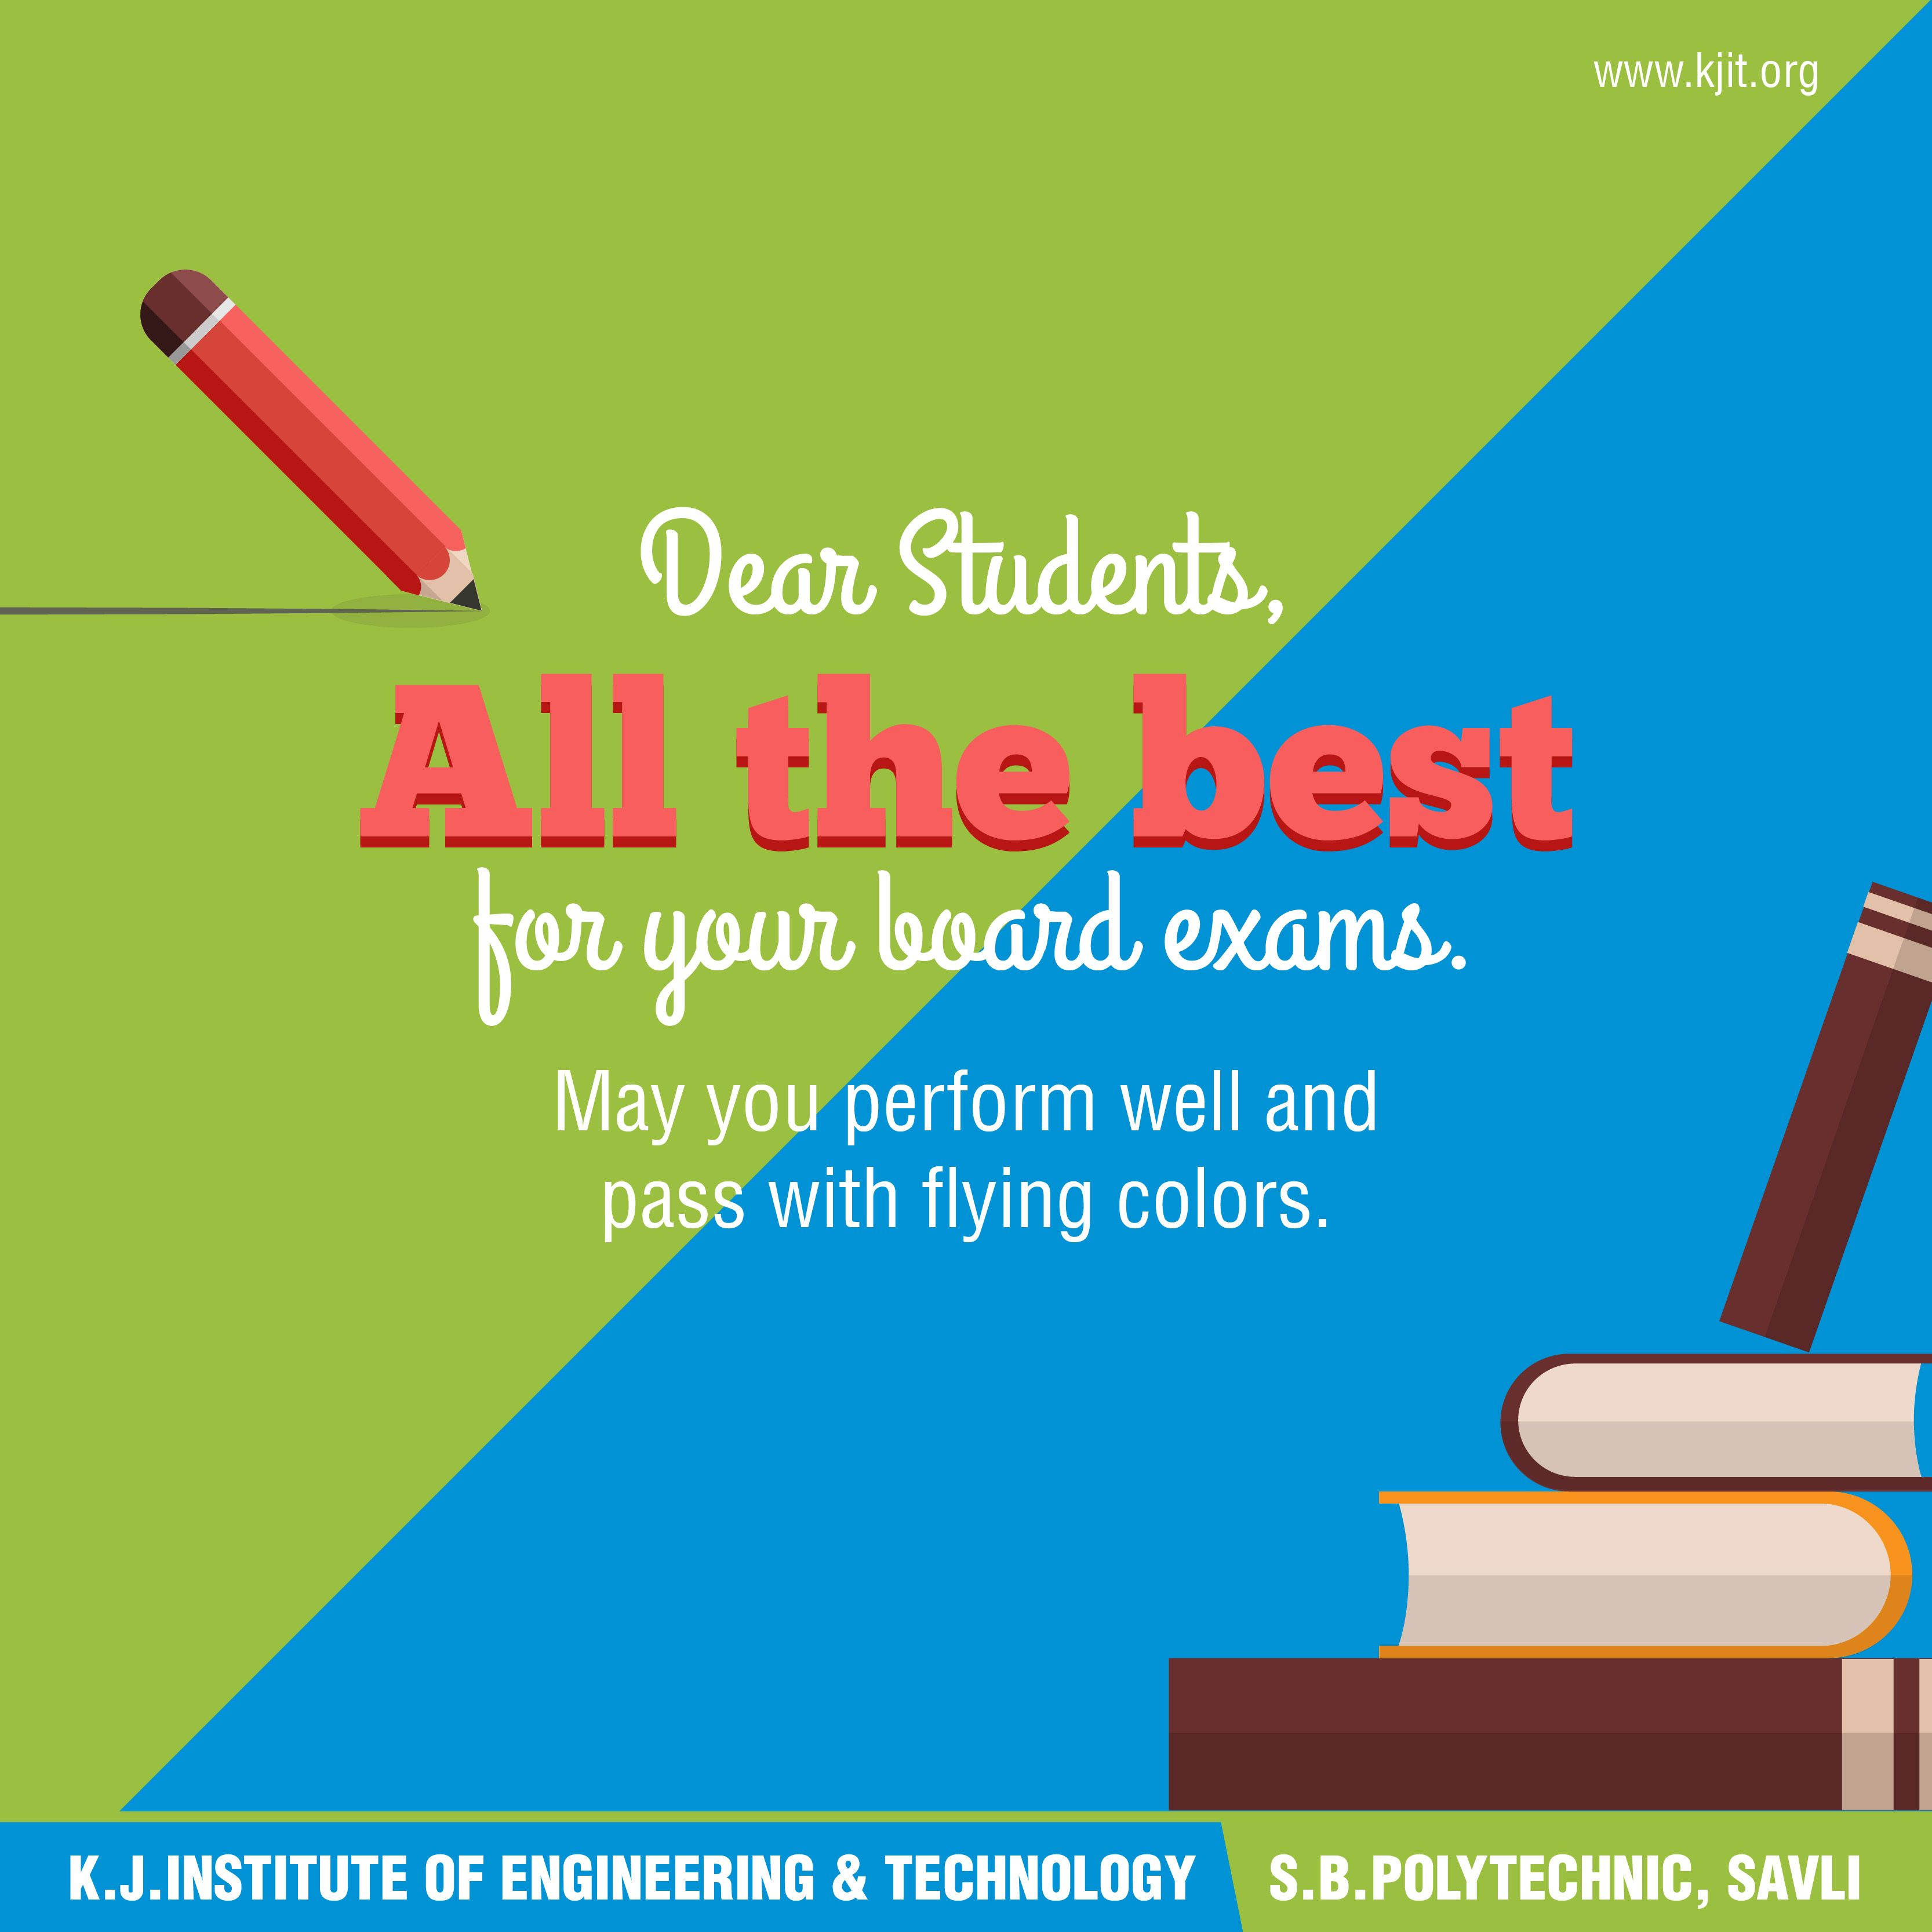 KJIT Engineering College - Savli wishes every student appearing for ...